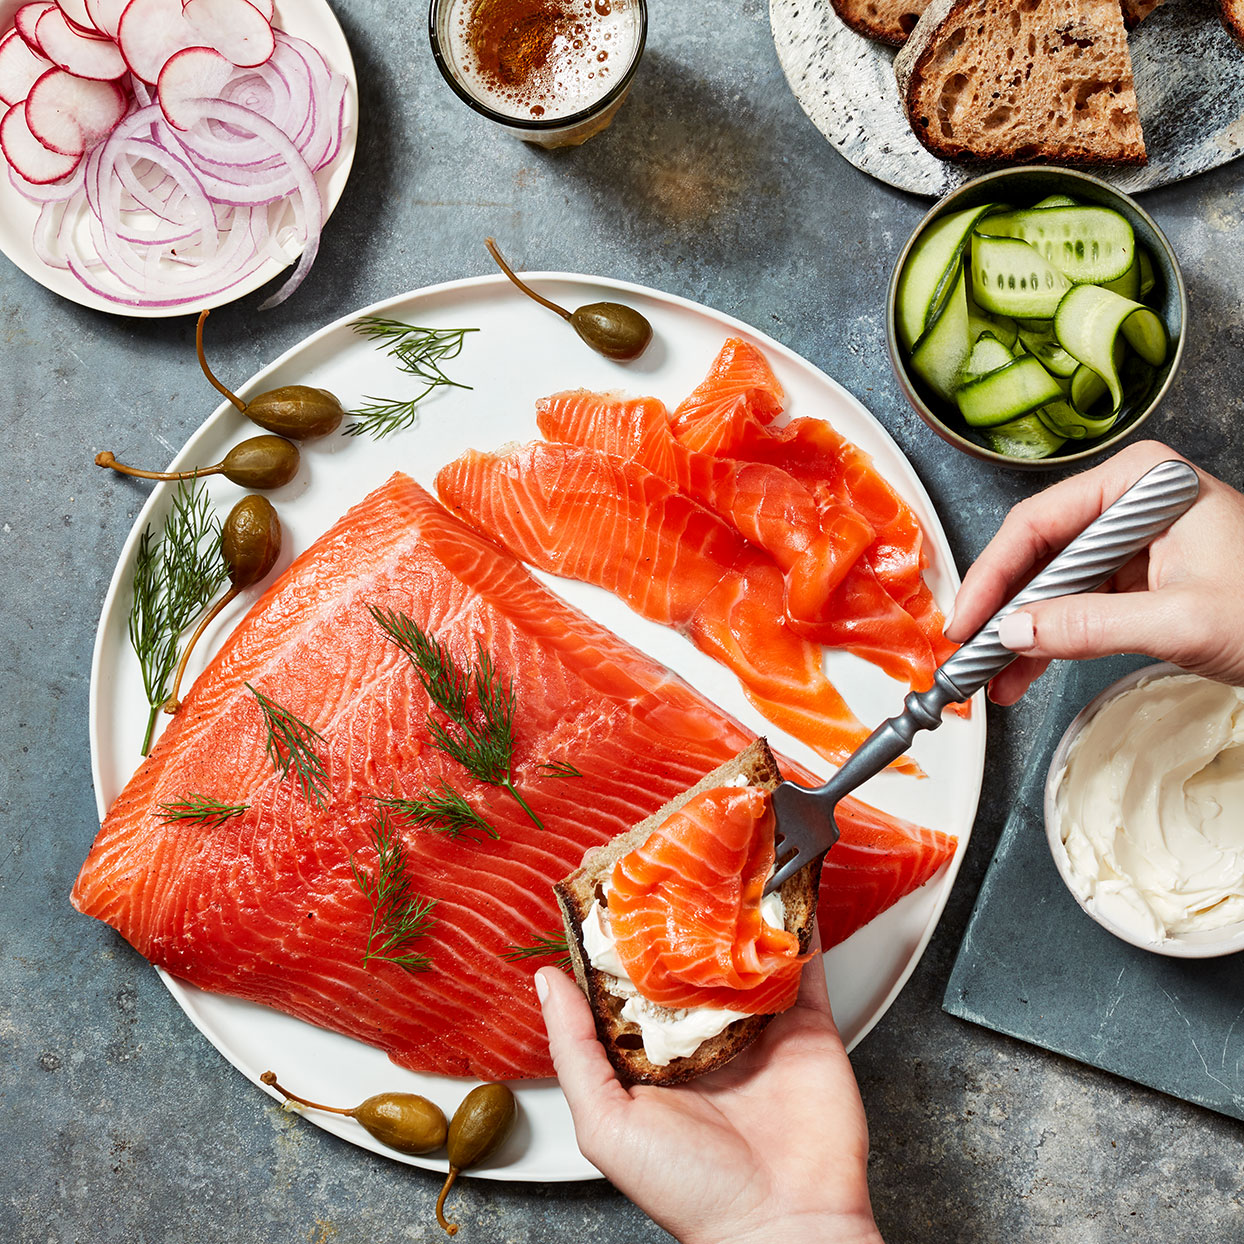 While this type of cured salmon, called gravlax, is usually made with skin-on salmon, this recipe removes the skin and rubs the curing mixture on both sides for better flavor penetration. Ask your fishmonger for a center-cut piece of salmon that's consistently 1½ inches thick for the best results. Green peppercorns are often sold in a brine, but you'll want to seek out dried ones for this recipe.